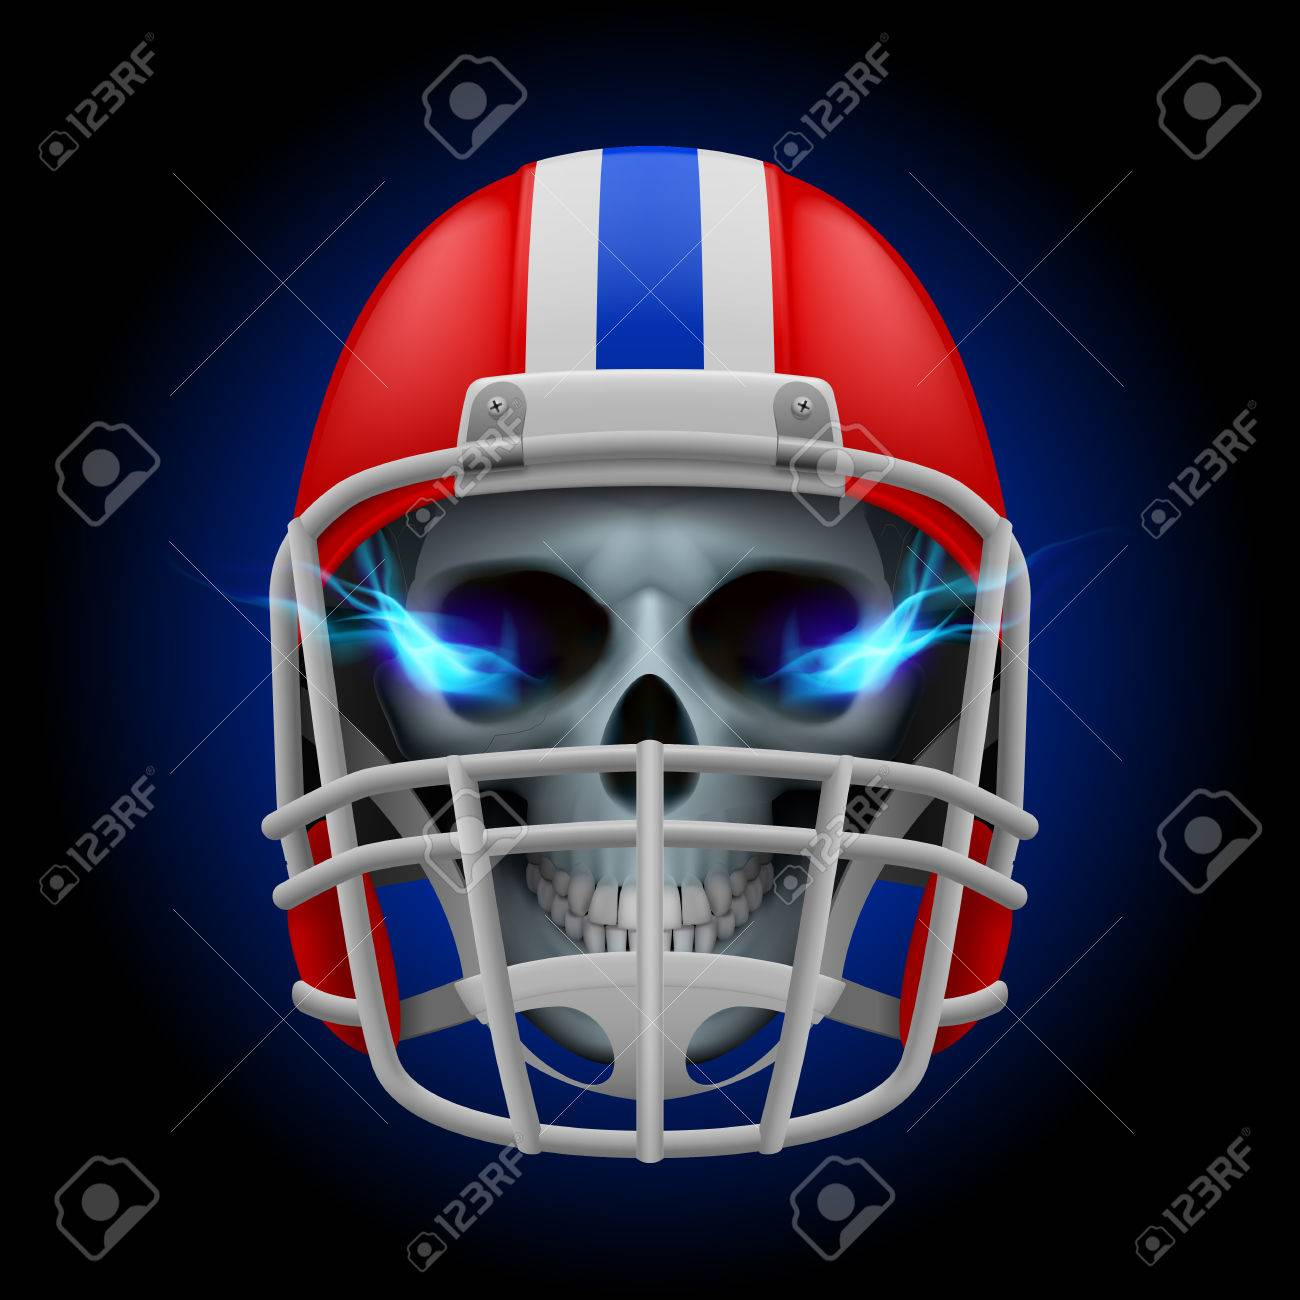 Red Football Helmet With Blue Fire Eyes Skull On A Black Background Royalty Free Cliparts Vectors And Stock Illustration Image 35026776